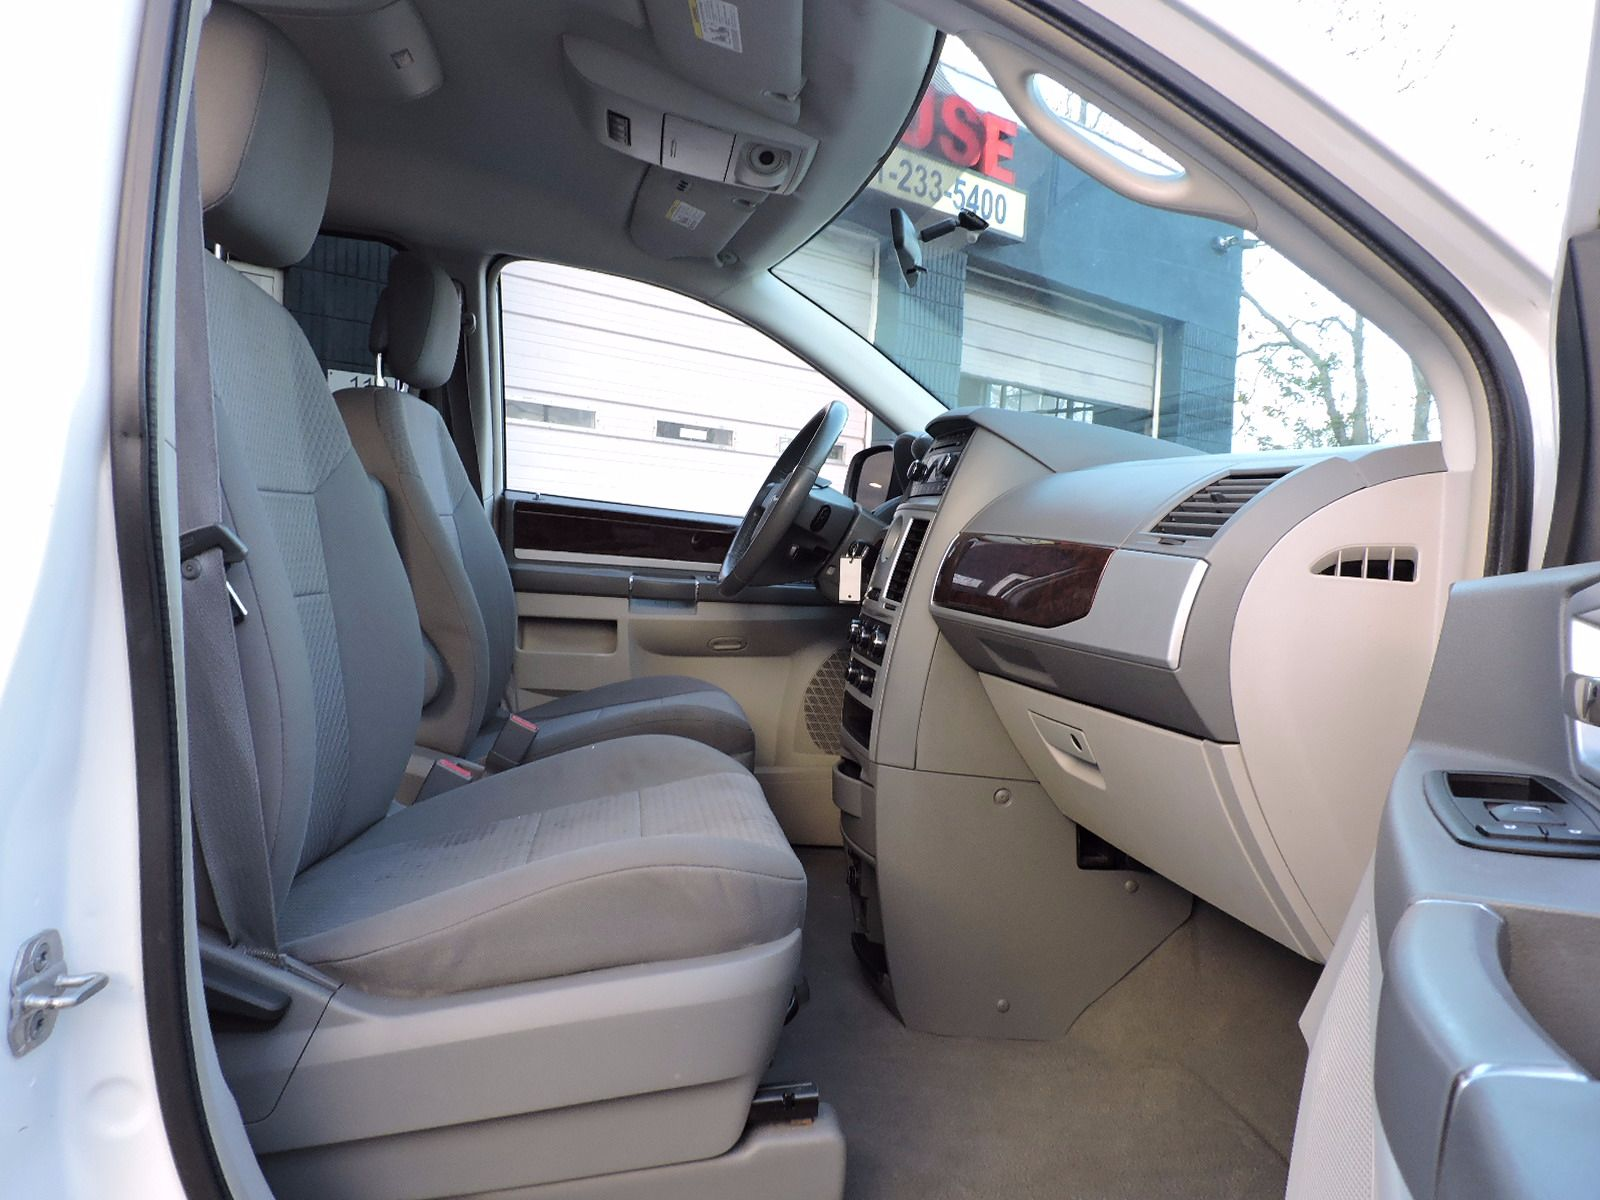 2010 Chrysler Town & Country - Touring Edition